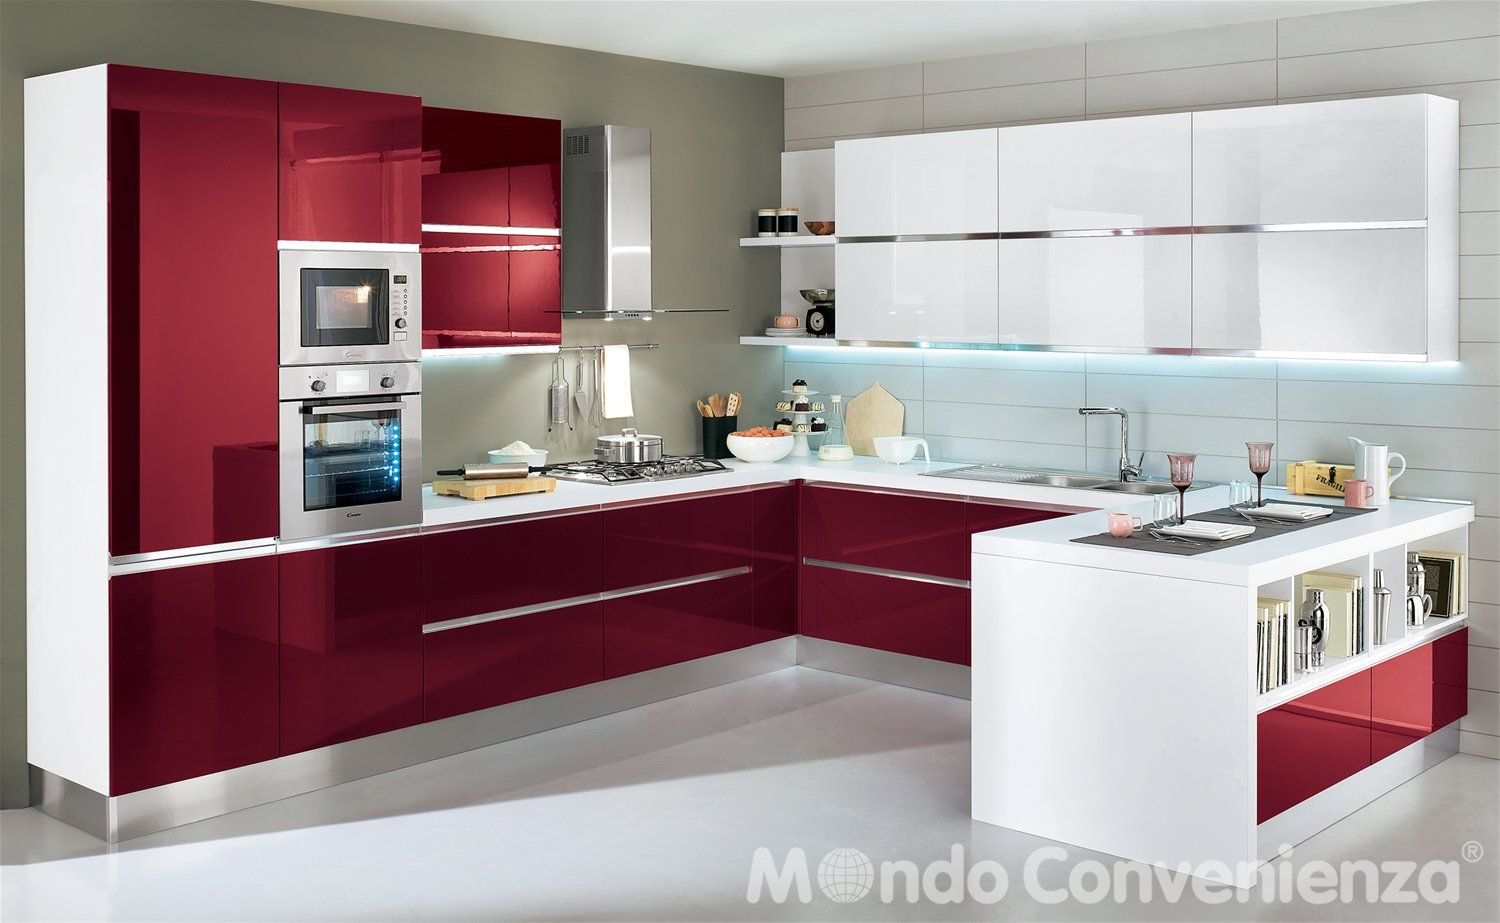 Cucina veronica mondo convenienza cucine pinterest for Scaffali mondo convenienza